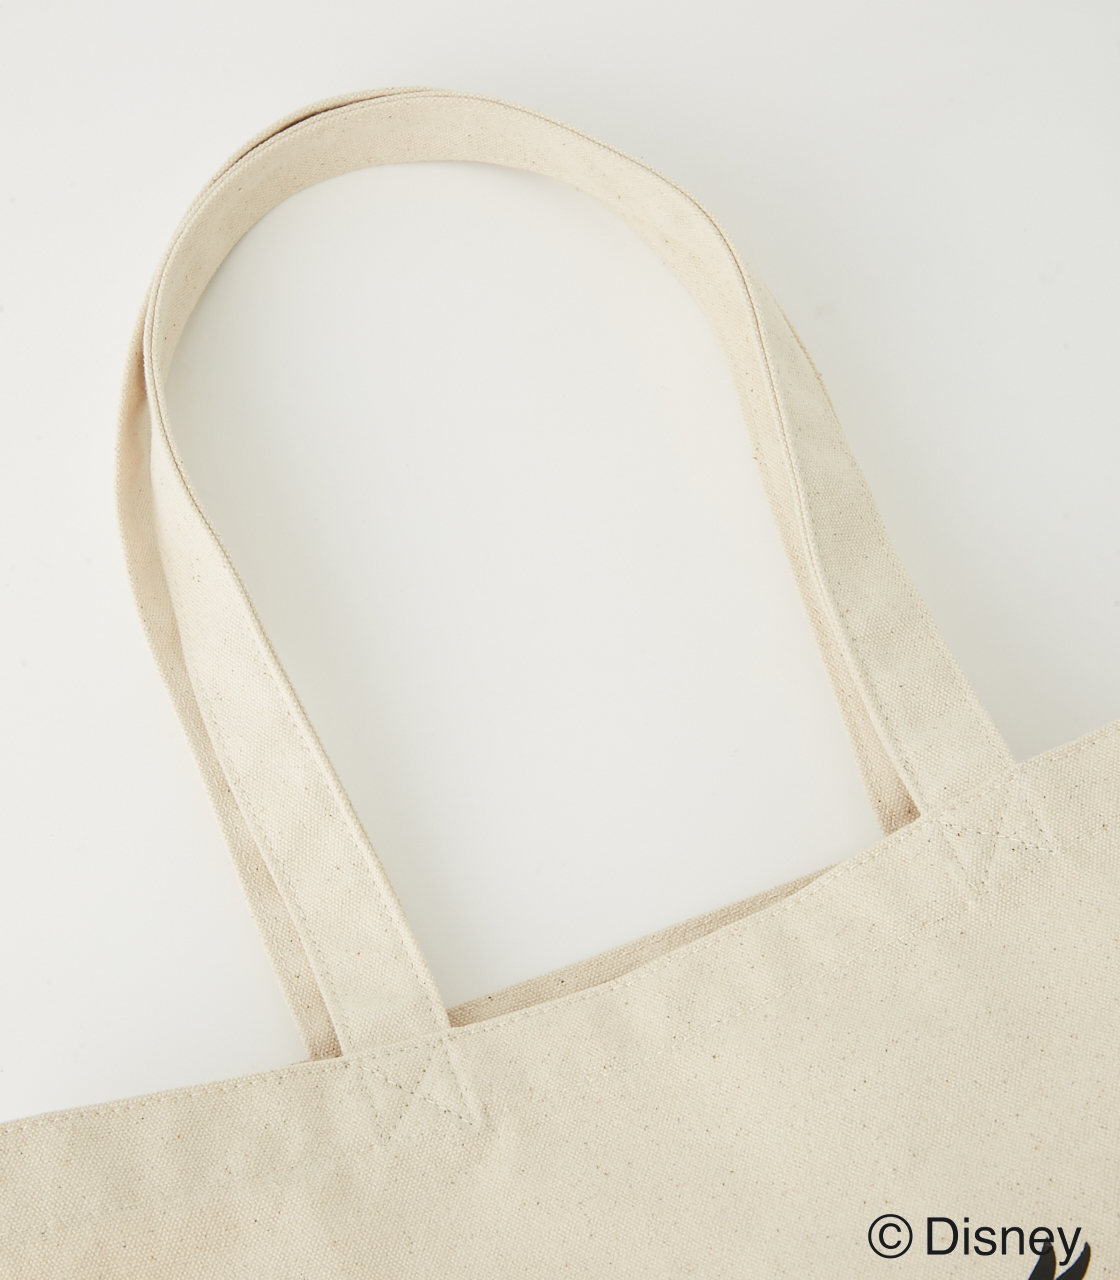 DONALD DUCK TOTE BAG/ドナルドダックトートバッグ 詳細画像 O/WHT 5